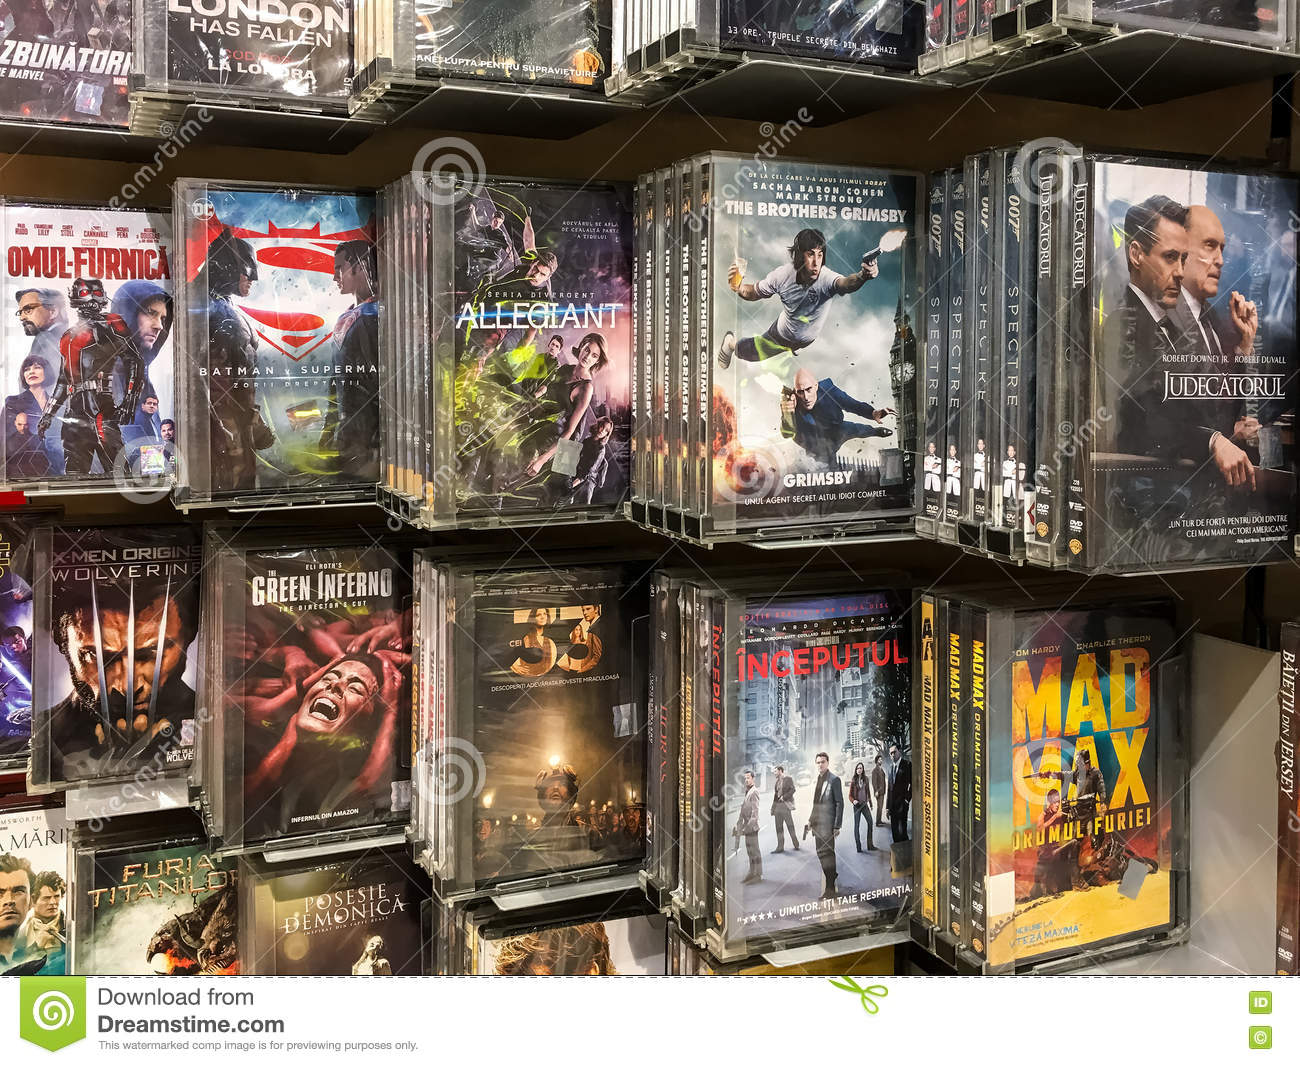 Classic And New Hollywood Production Movies On Dvd For Sale In